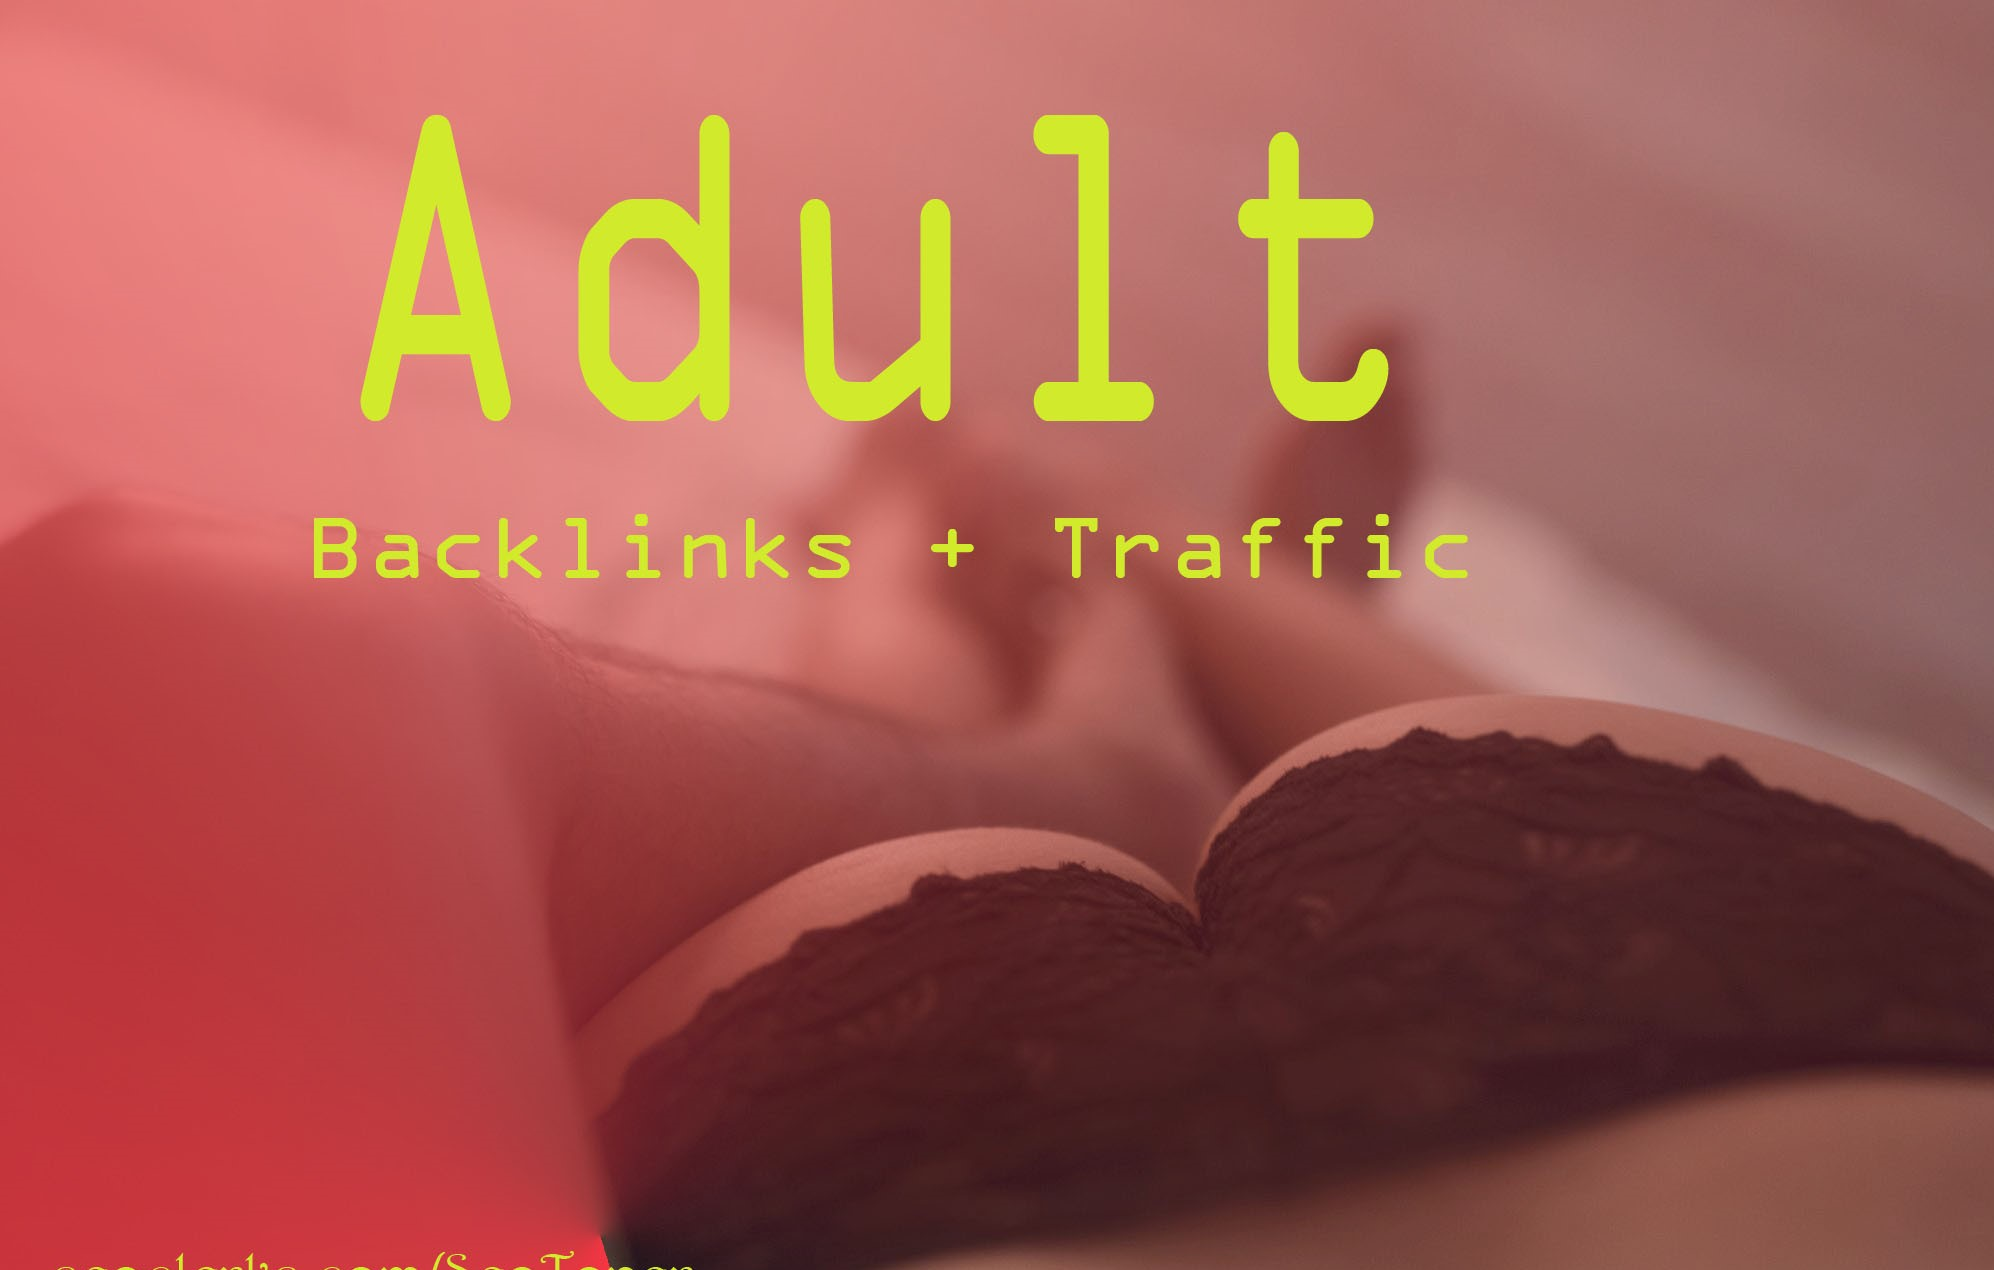 XXX 350+ High quality backlinks for Adult site/Escorts/Dating Rank Booster High Authority Backlinks